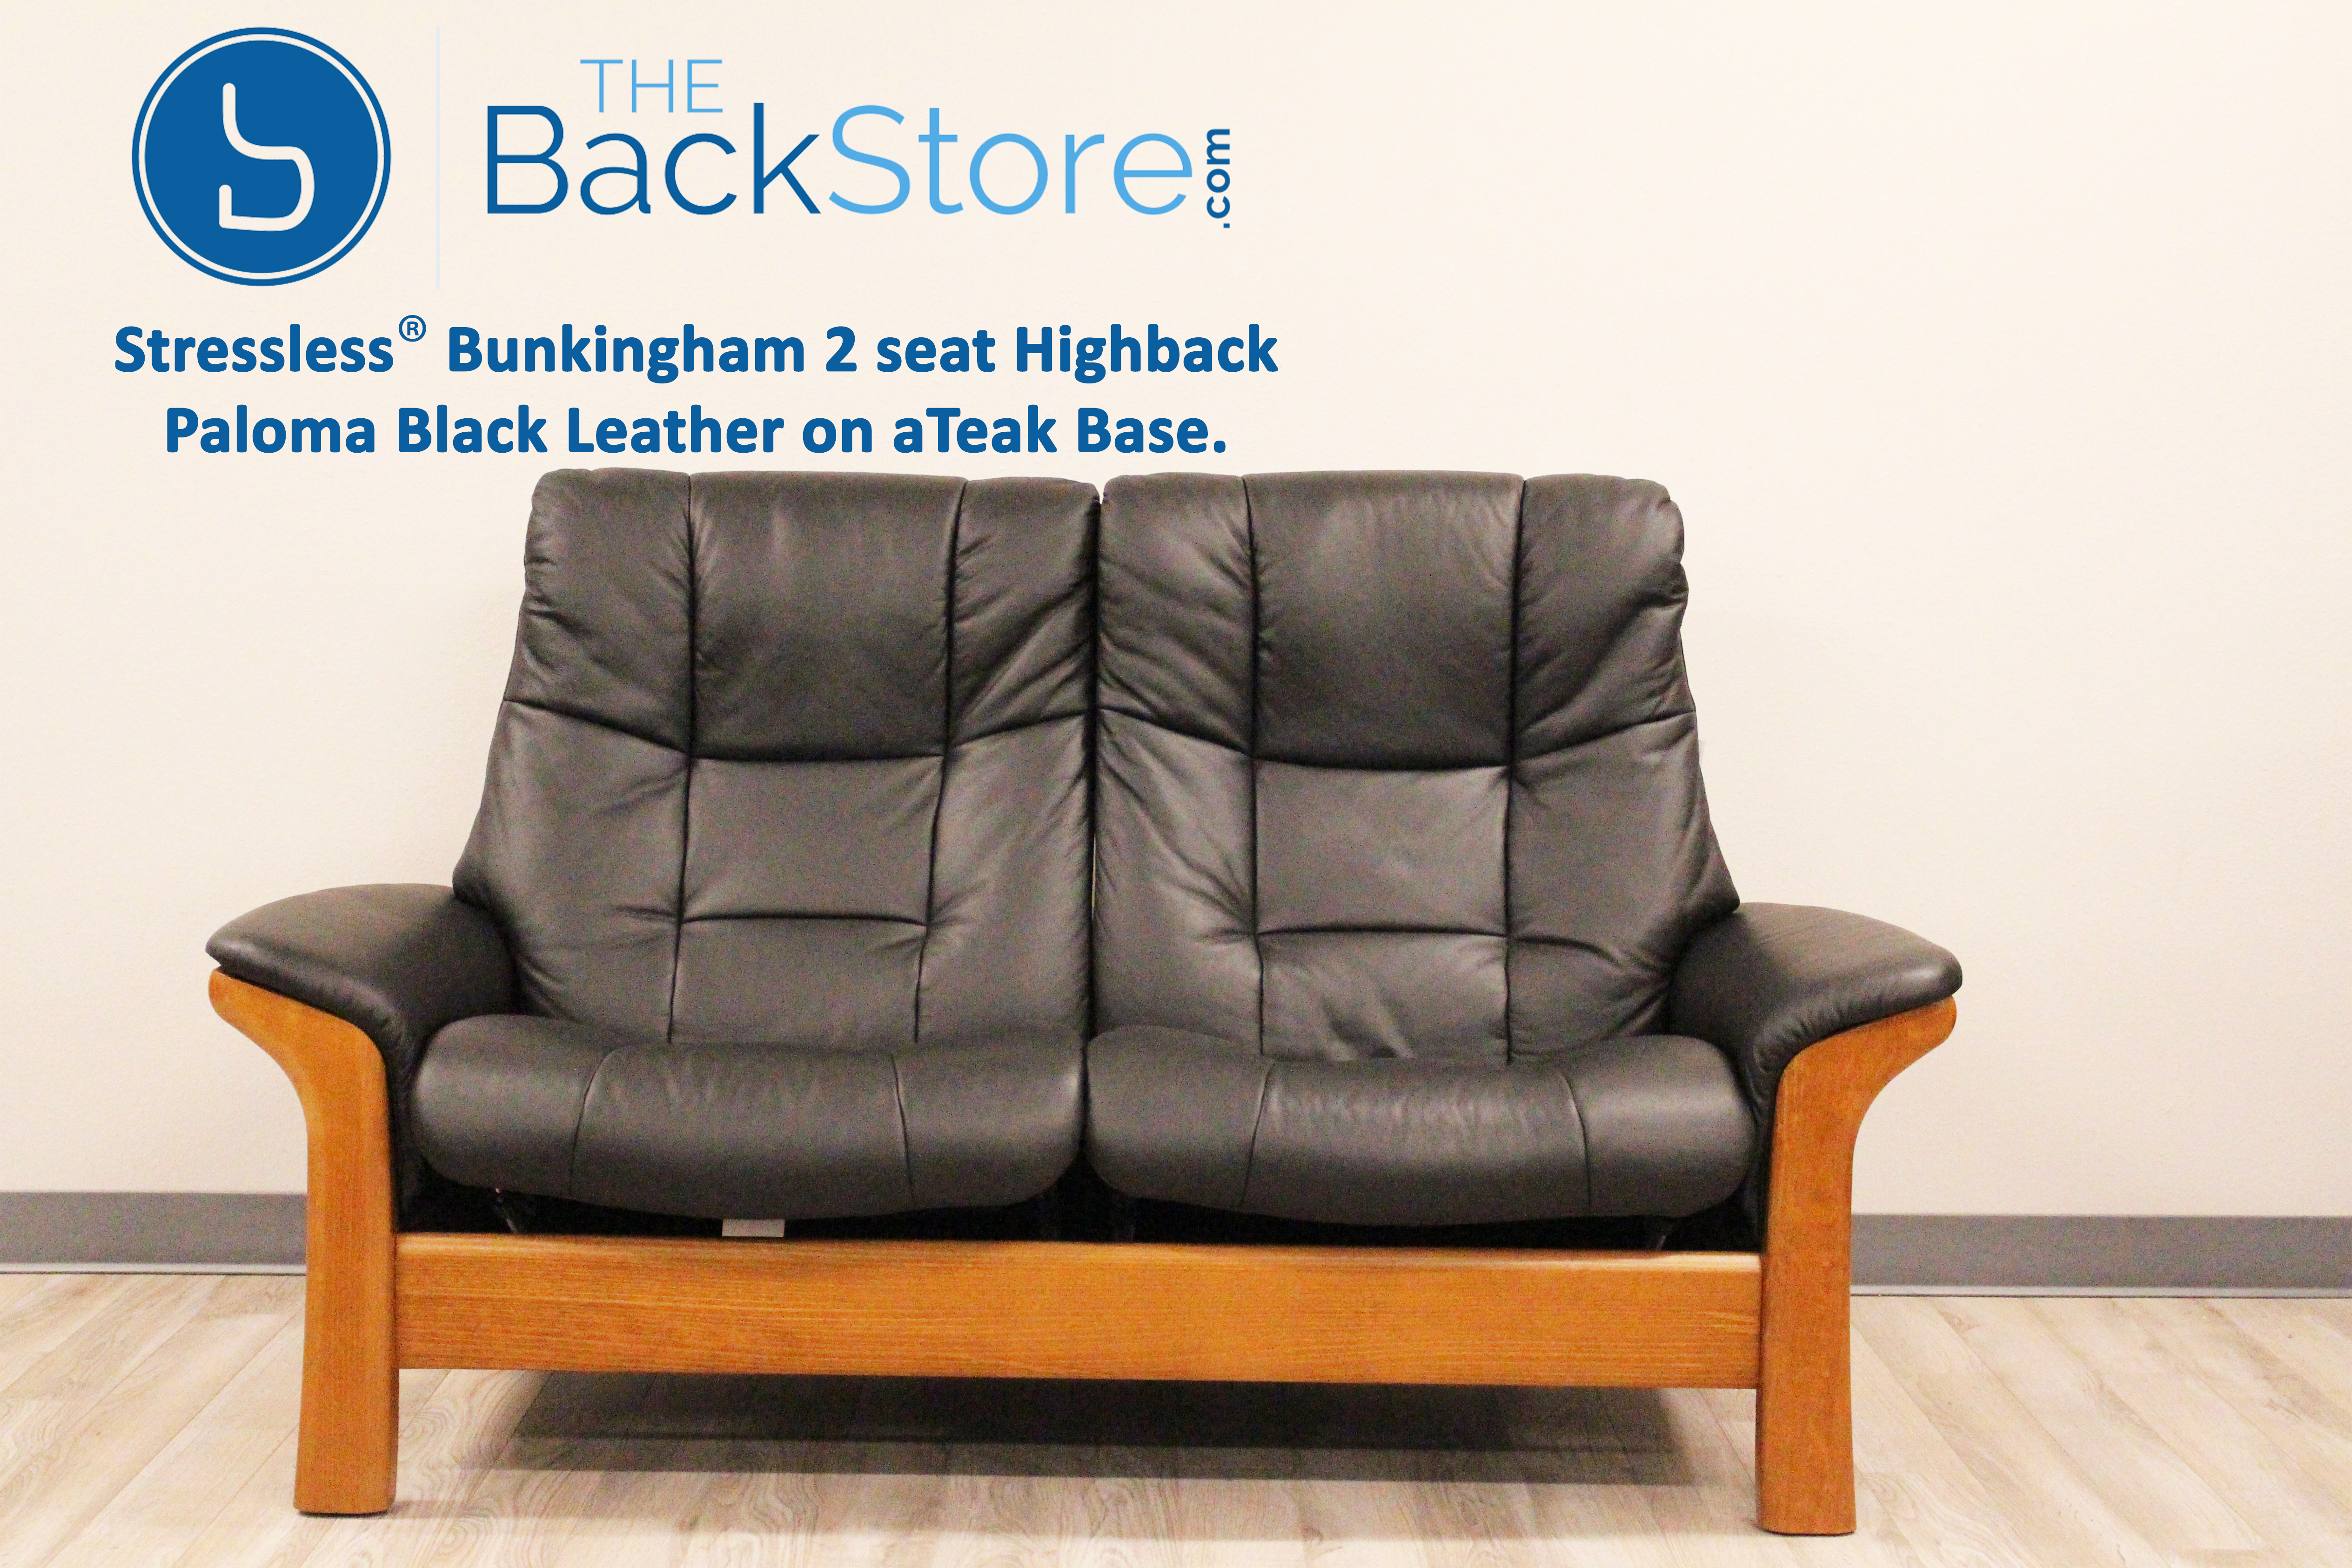 Stressless Buckingham 2 Seat Loveseat High Back Sofa Paloma Black Color  Leather by Ekornes